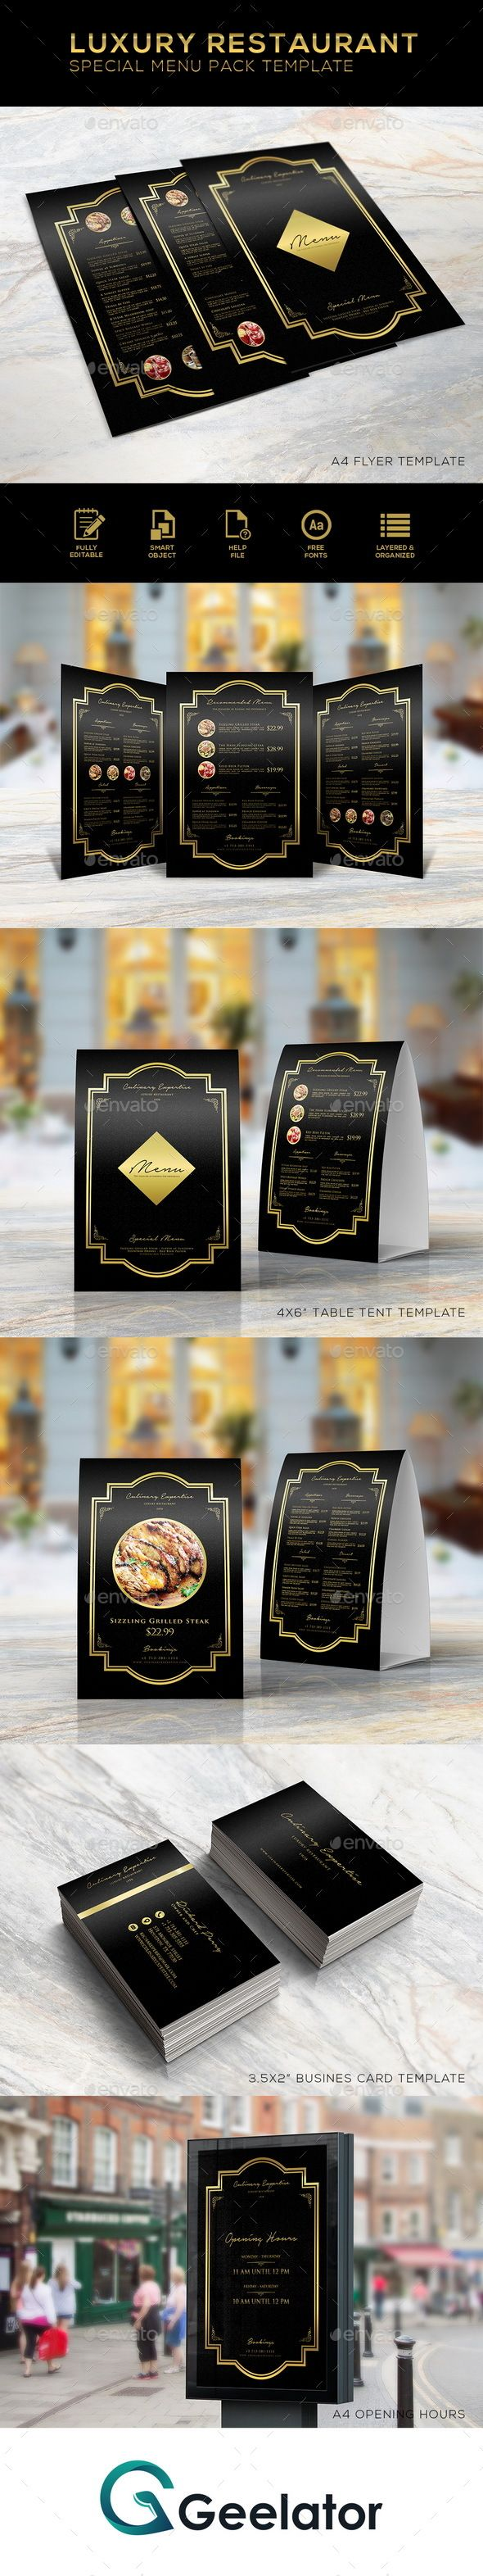 Luxury Restaurant Special Menu Pack Template - #bar #black #cafe #cafemenu #coffeshop #creative #deliciousmenu #deluxe #elegant #fastfood #fastfoodmenu #food #foodmenu #luxurious #luxury #luxurymenu #luxuryrestaurantmenu #menu #menudesign #menupack #menutemplates #multipurpose #multipurposemenu #printtemplate #promotion #restaurant #restaurantmenu #steak #streetfood #streetfoodmenu